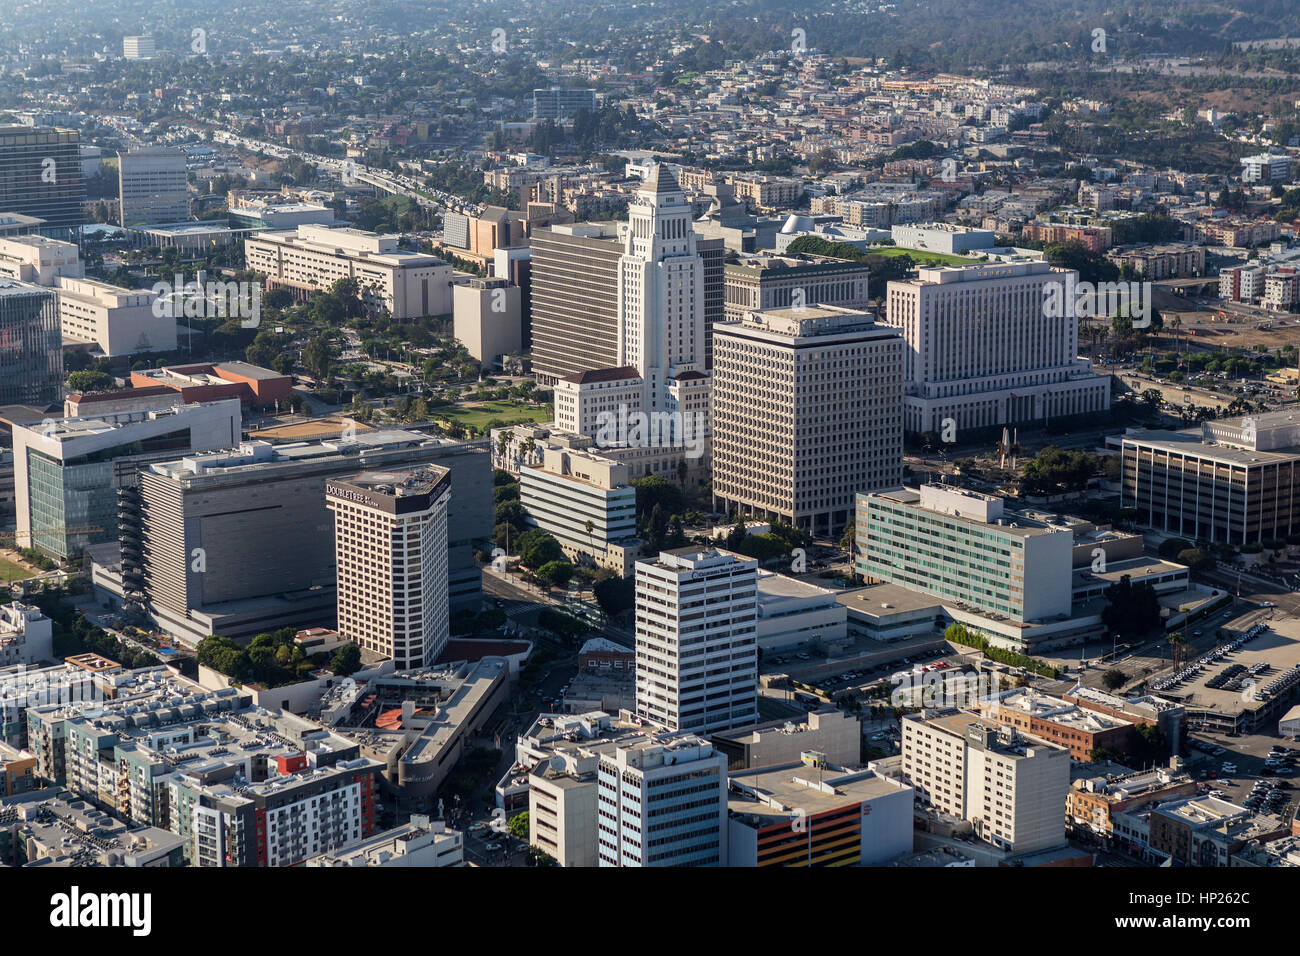 Los Angeles, California, USA - August 6, 2016:  Afternoon aerial view of LA City Hall and Civic Center buildings. - Stock Image